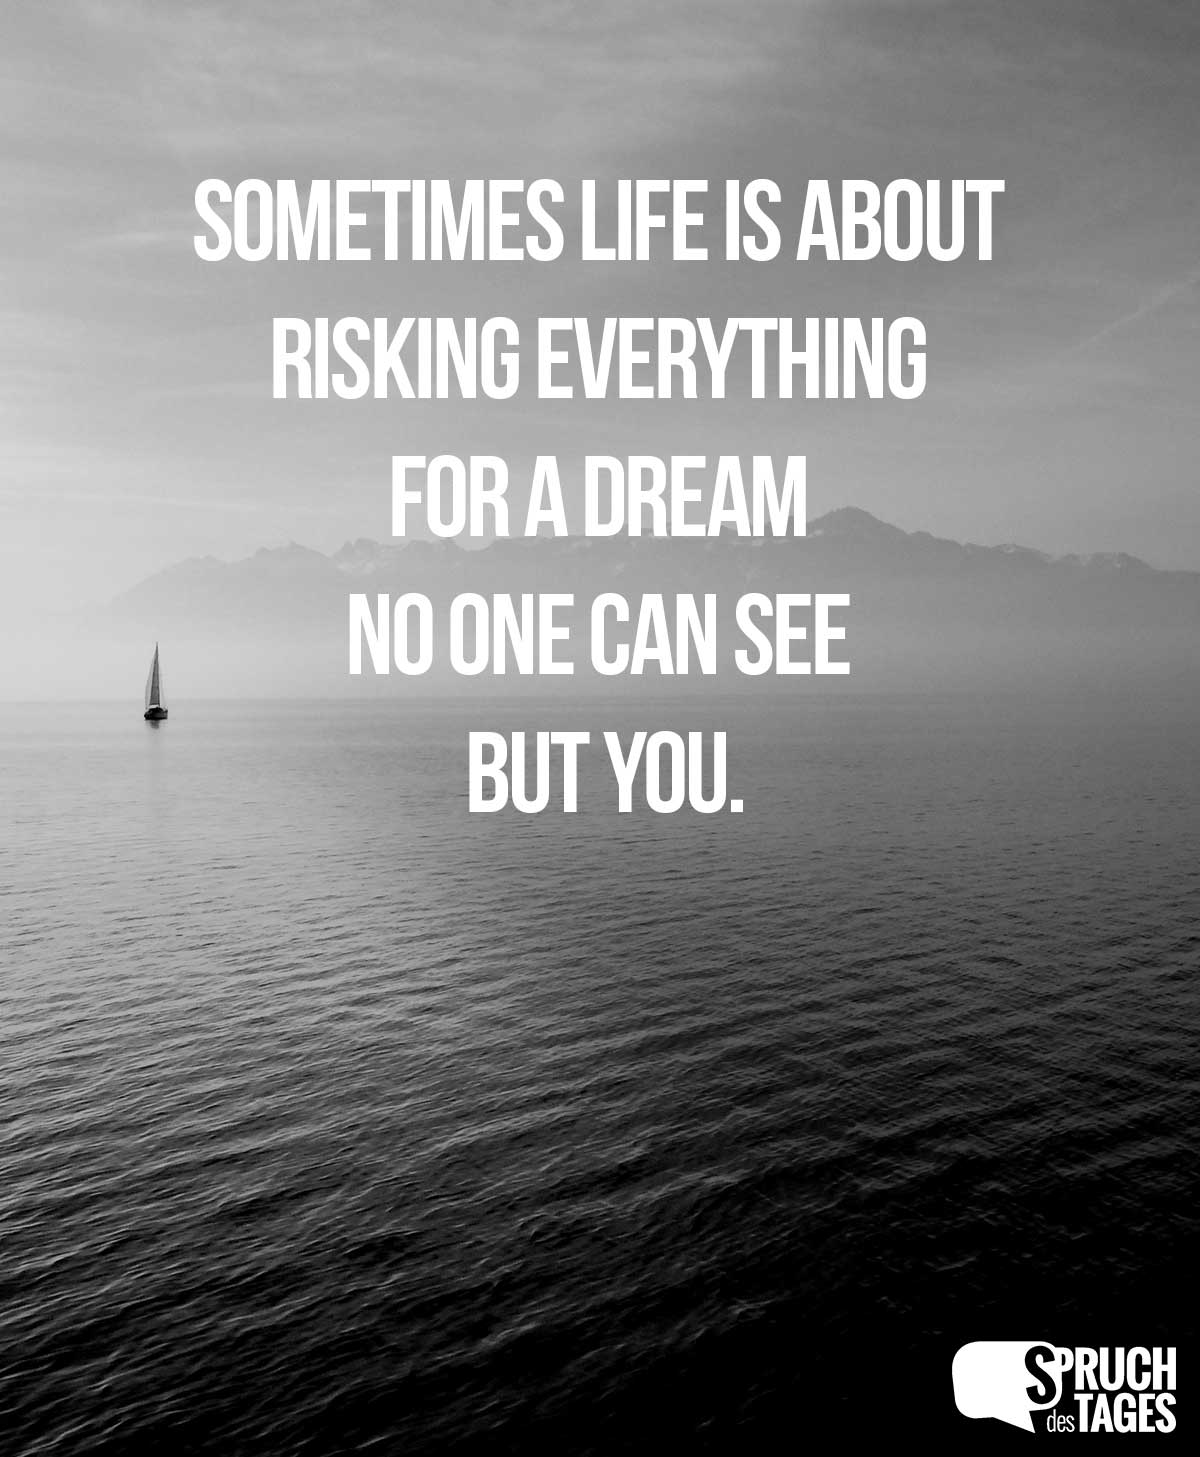 sprüche facebook englisch Sometimes life is about risking everything for a dream no one can  sprüche facebook englisch